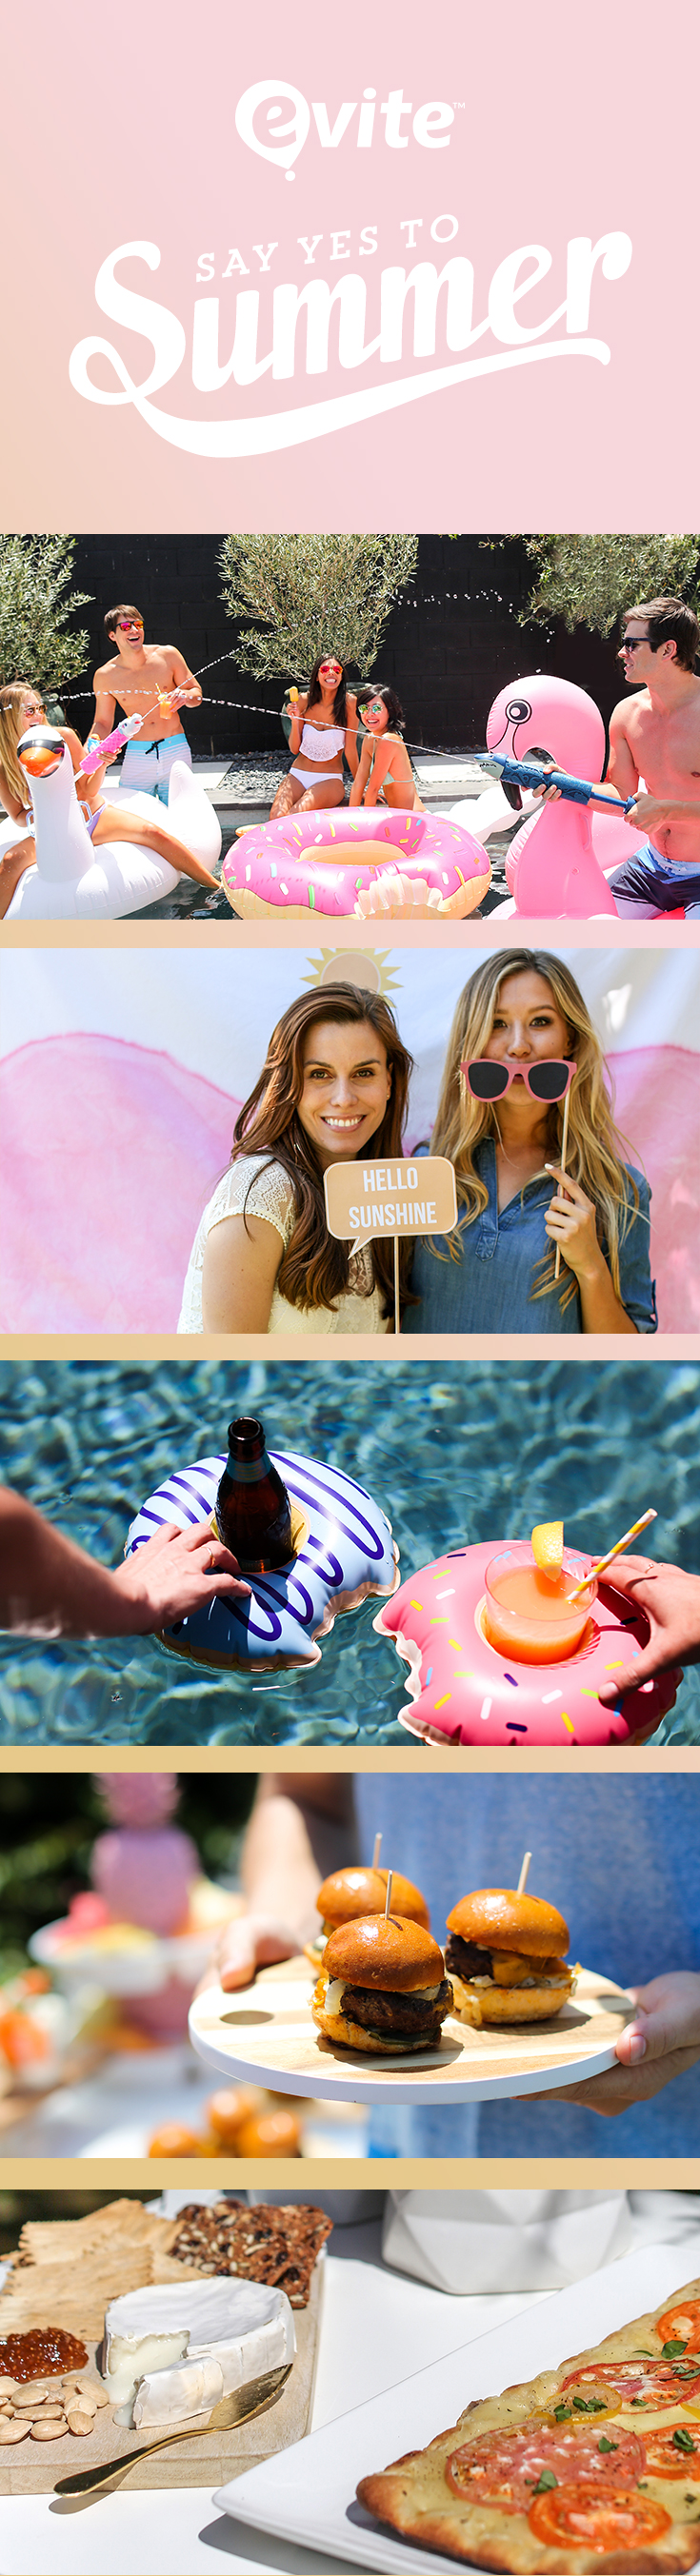 Say Yes To Summer Contest! See more details on B. Lovely Events